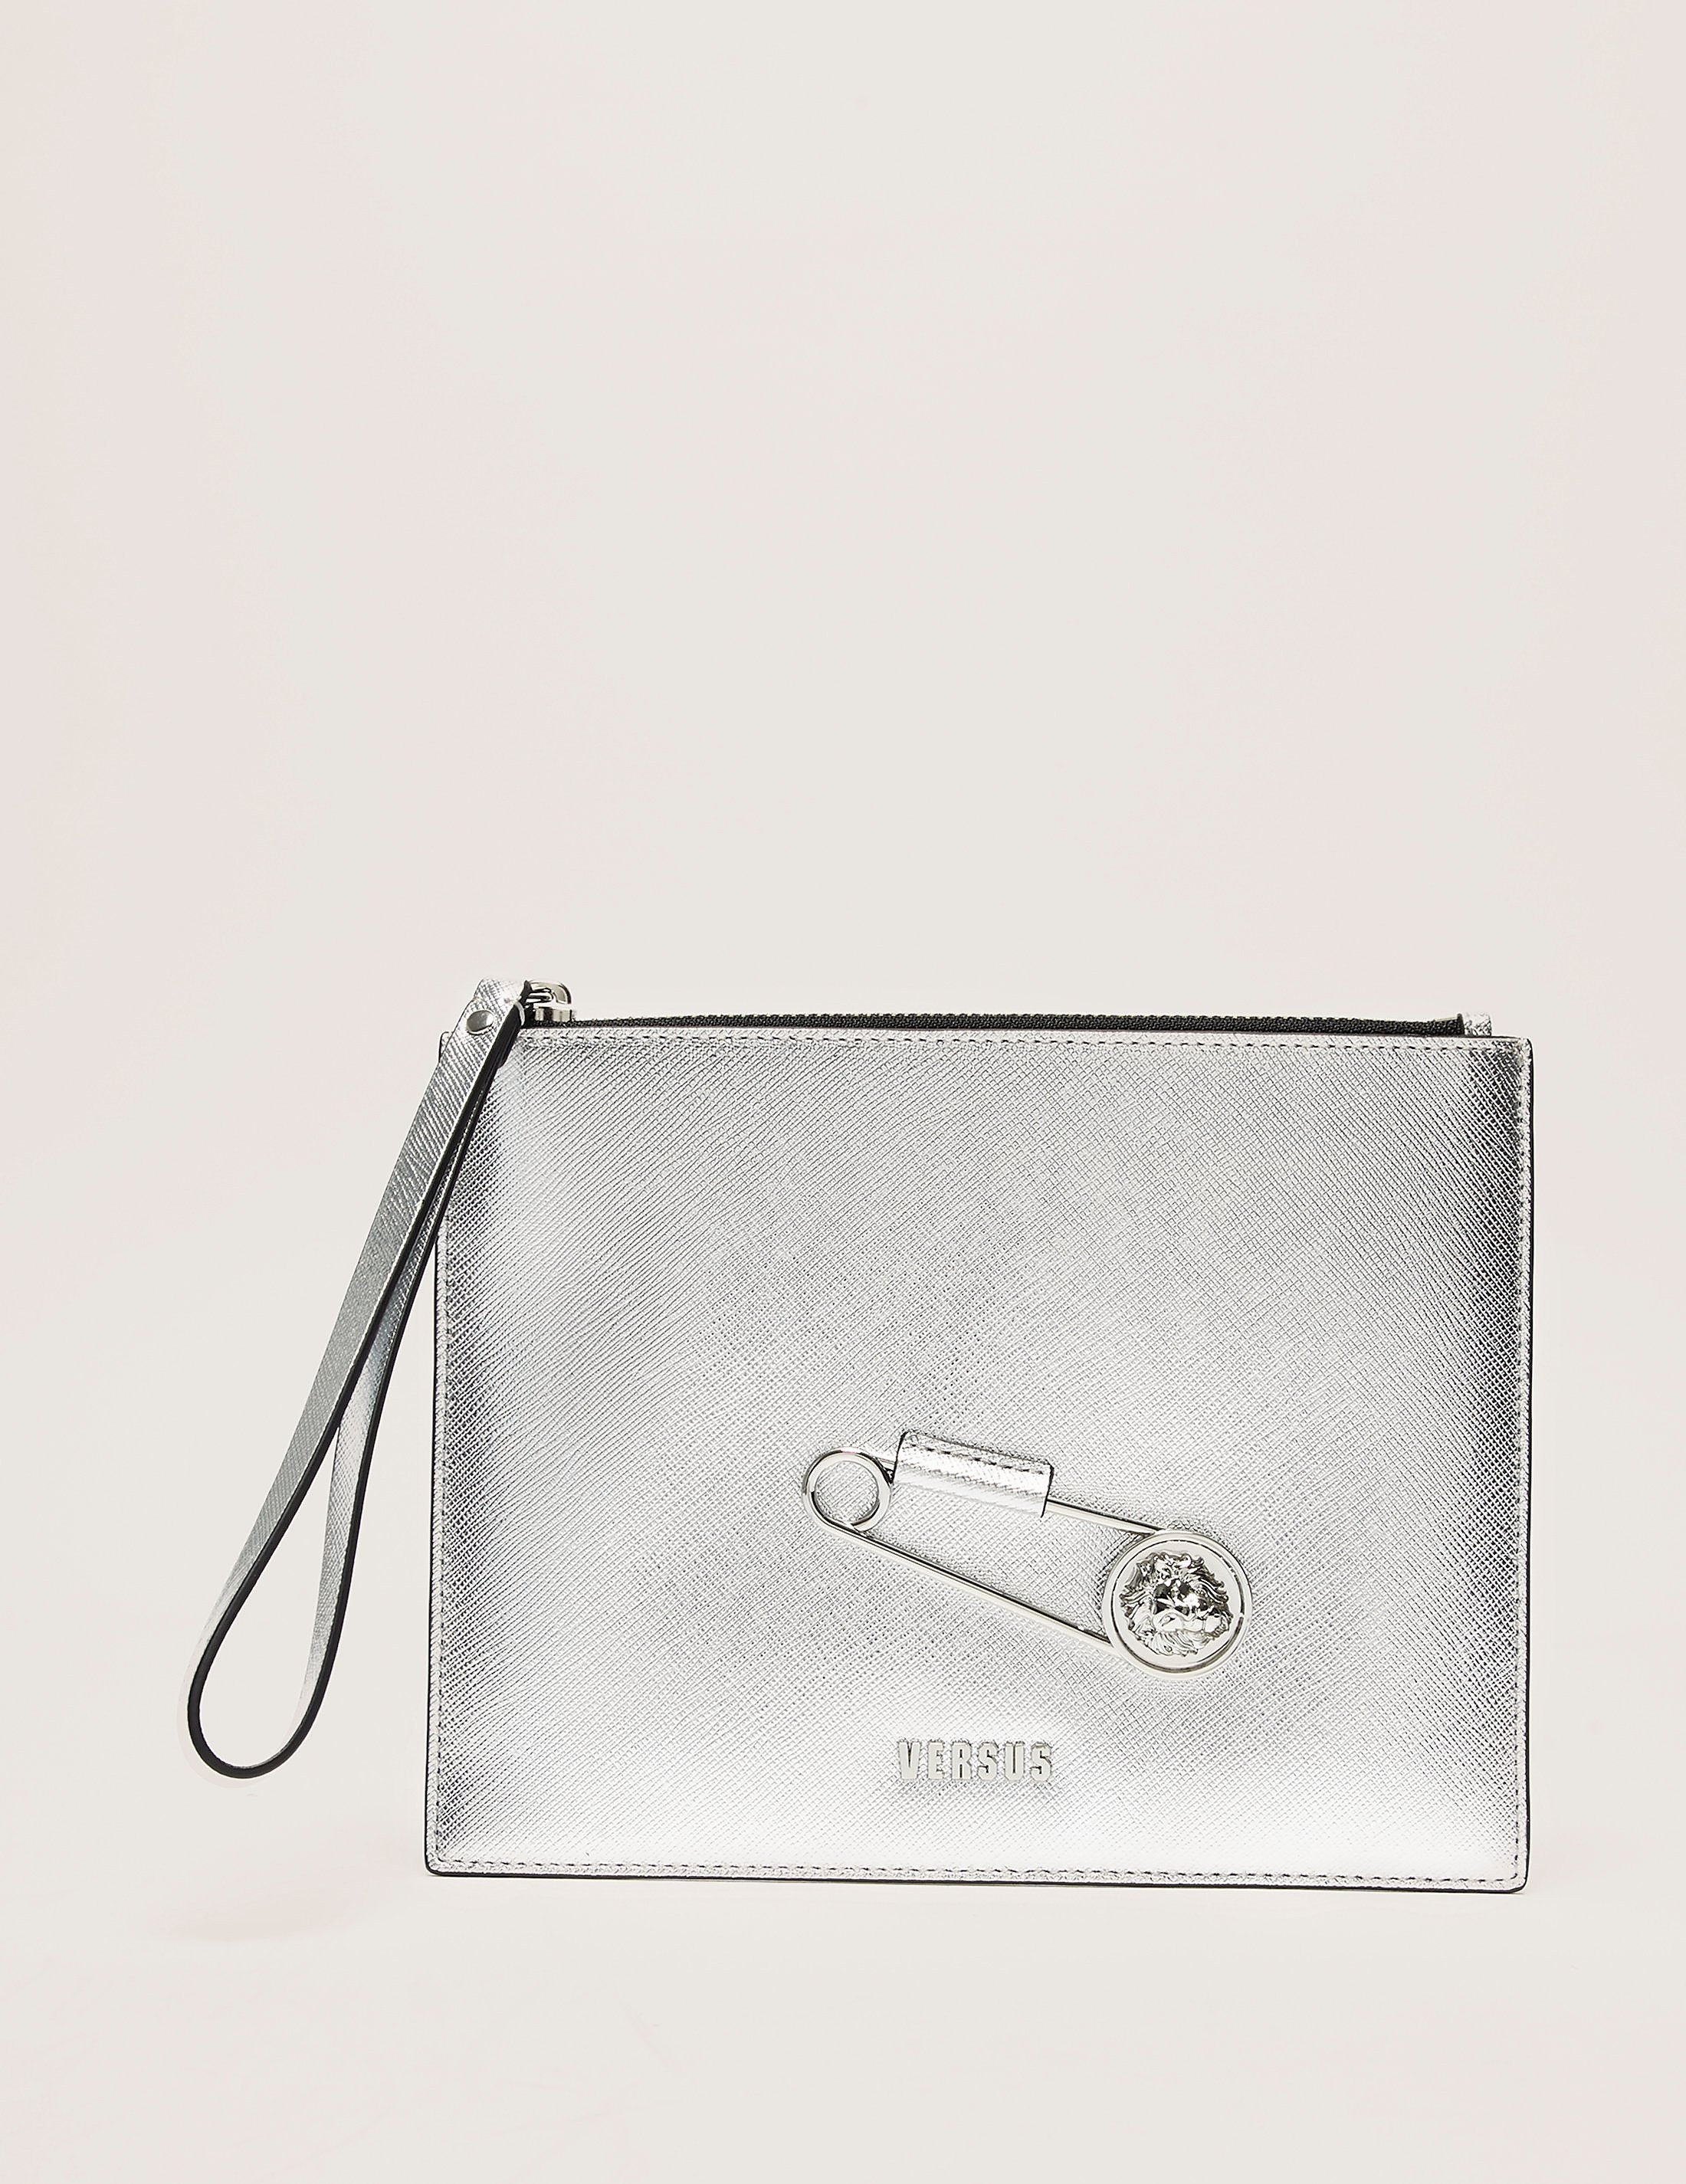 Versus Versace Safety Pin Clutch